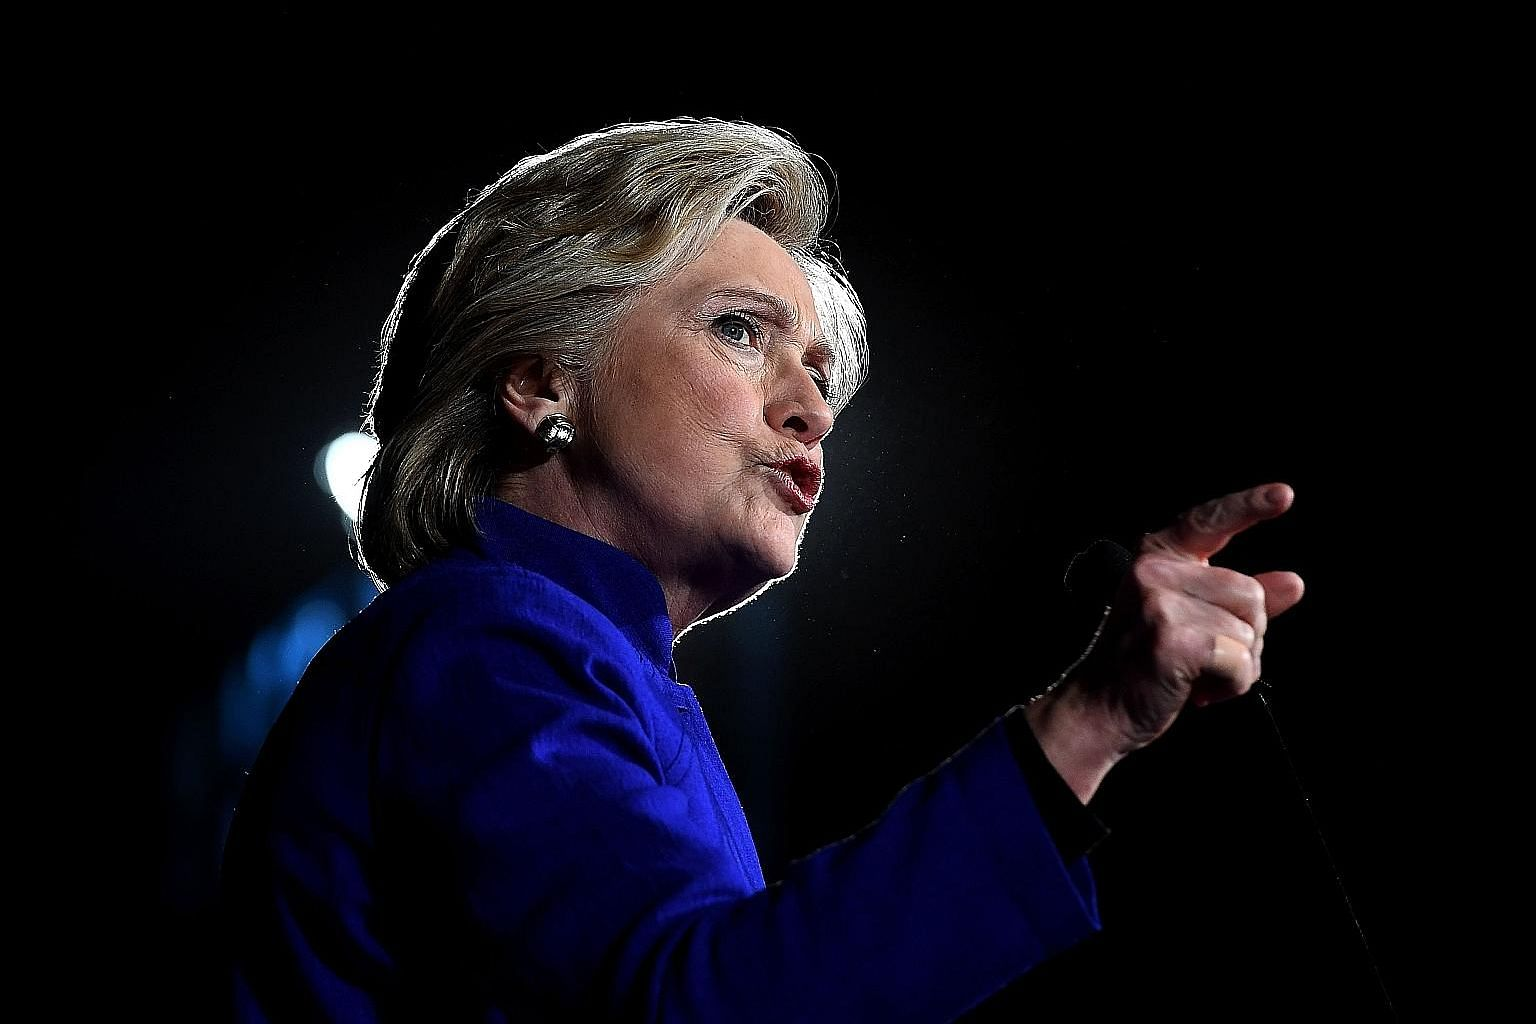 If Mrs Clinton wins the election but gets charged before Inauguration Day on Jan 20, most experts think she will likely step down and hand the presidency over to her vice-president, Mr Tim Kaine.